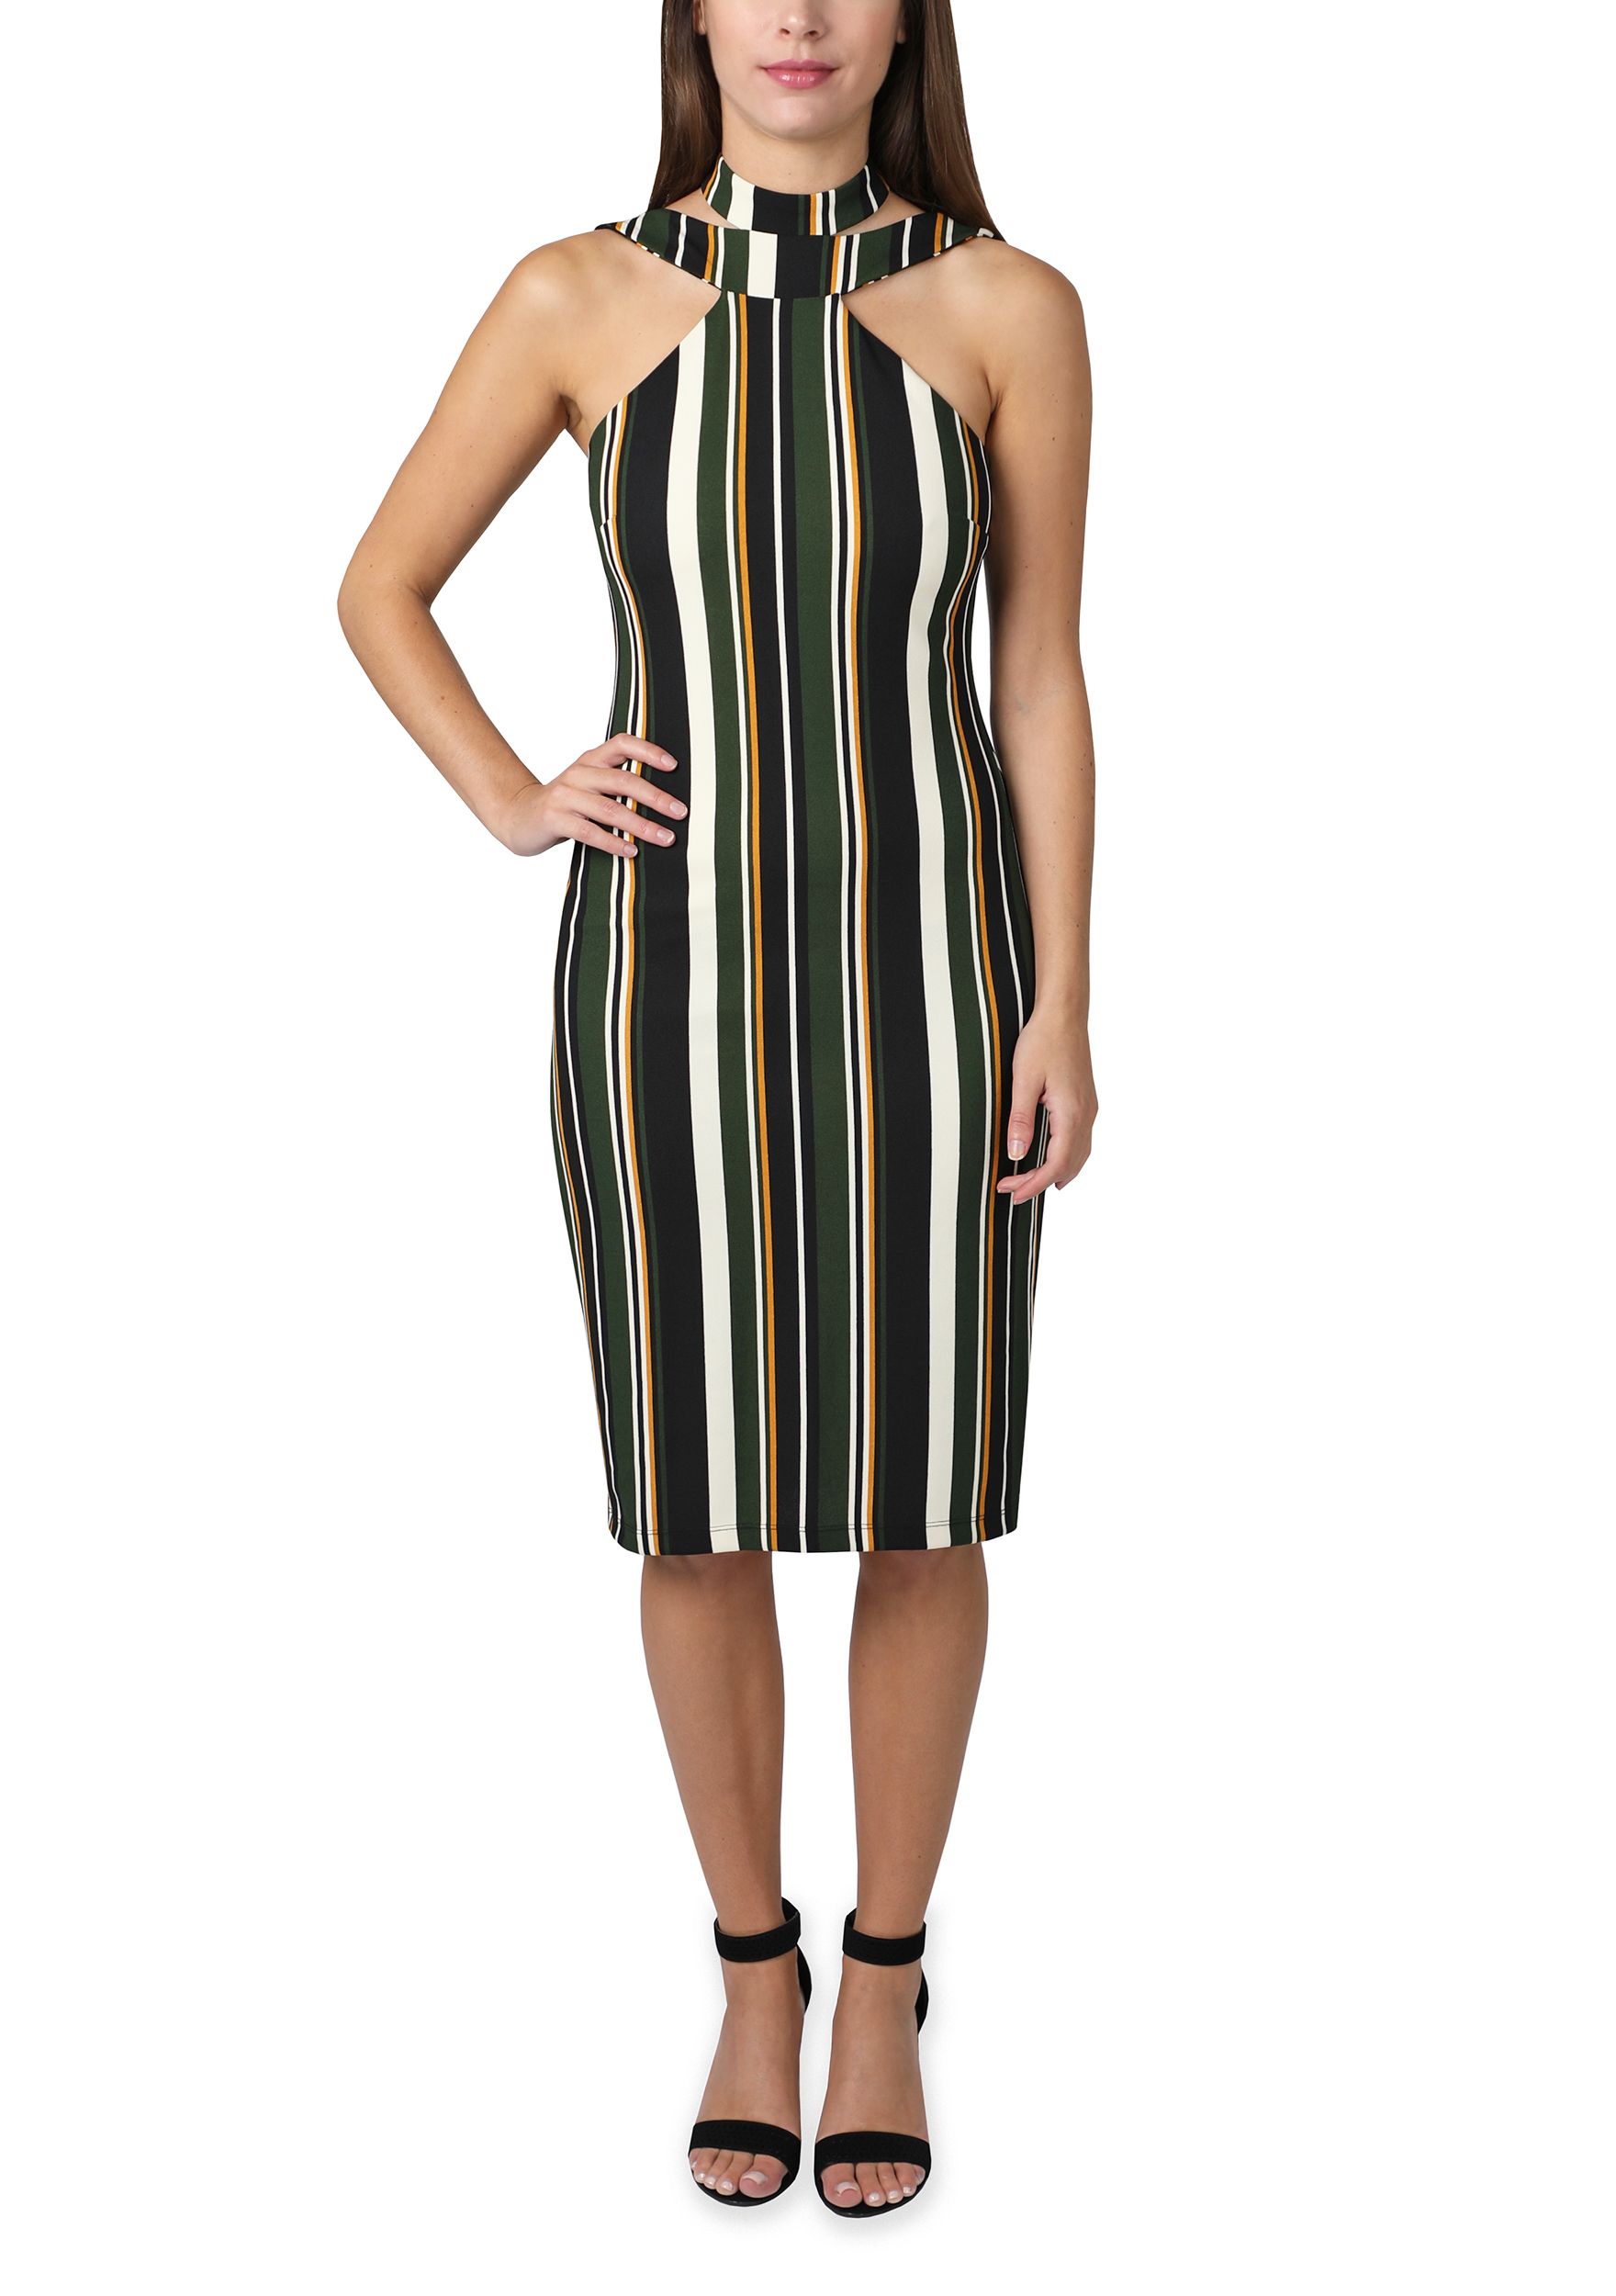 Bebe Stripe Halter Midi Dress - Green/multi - Front